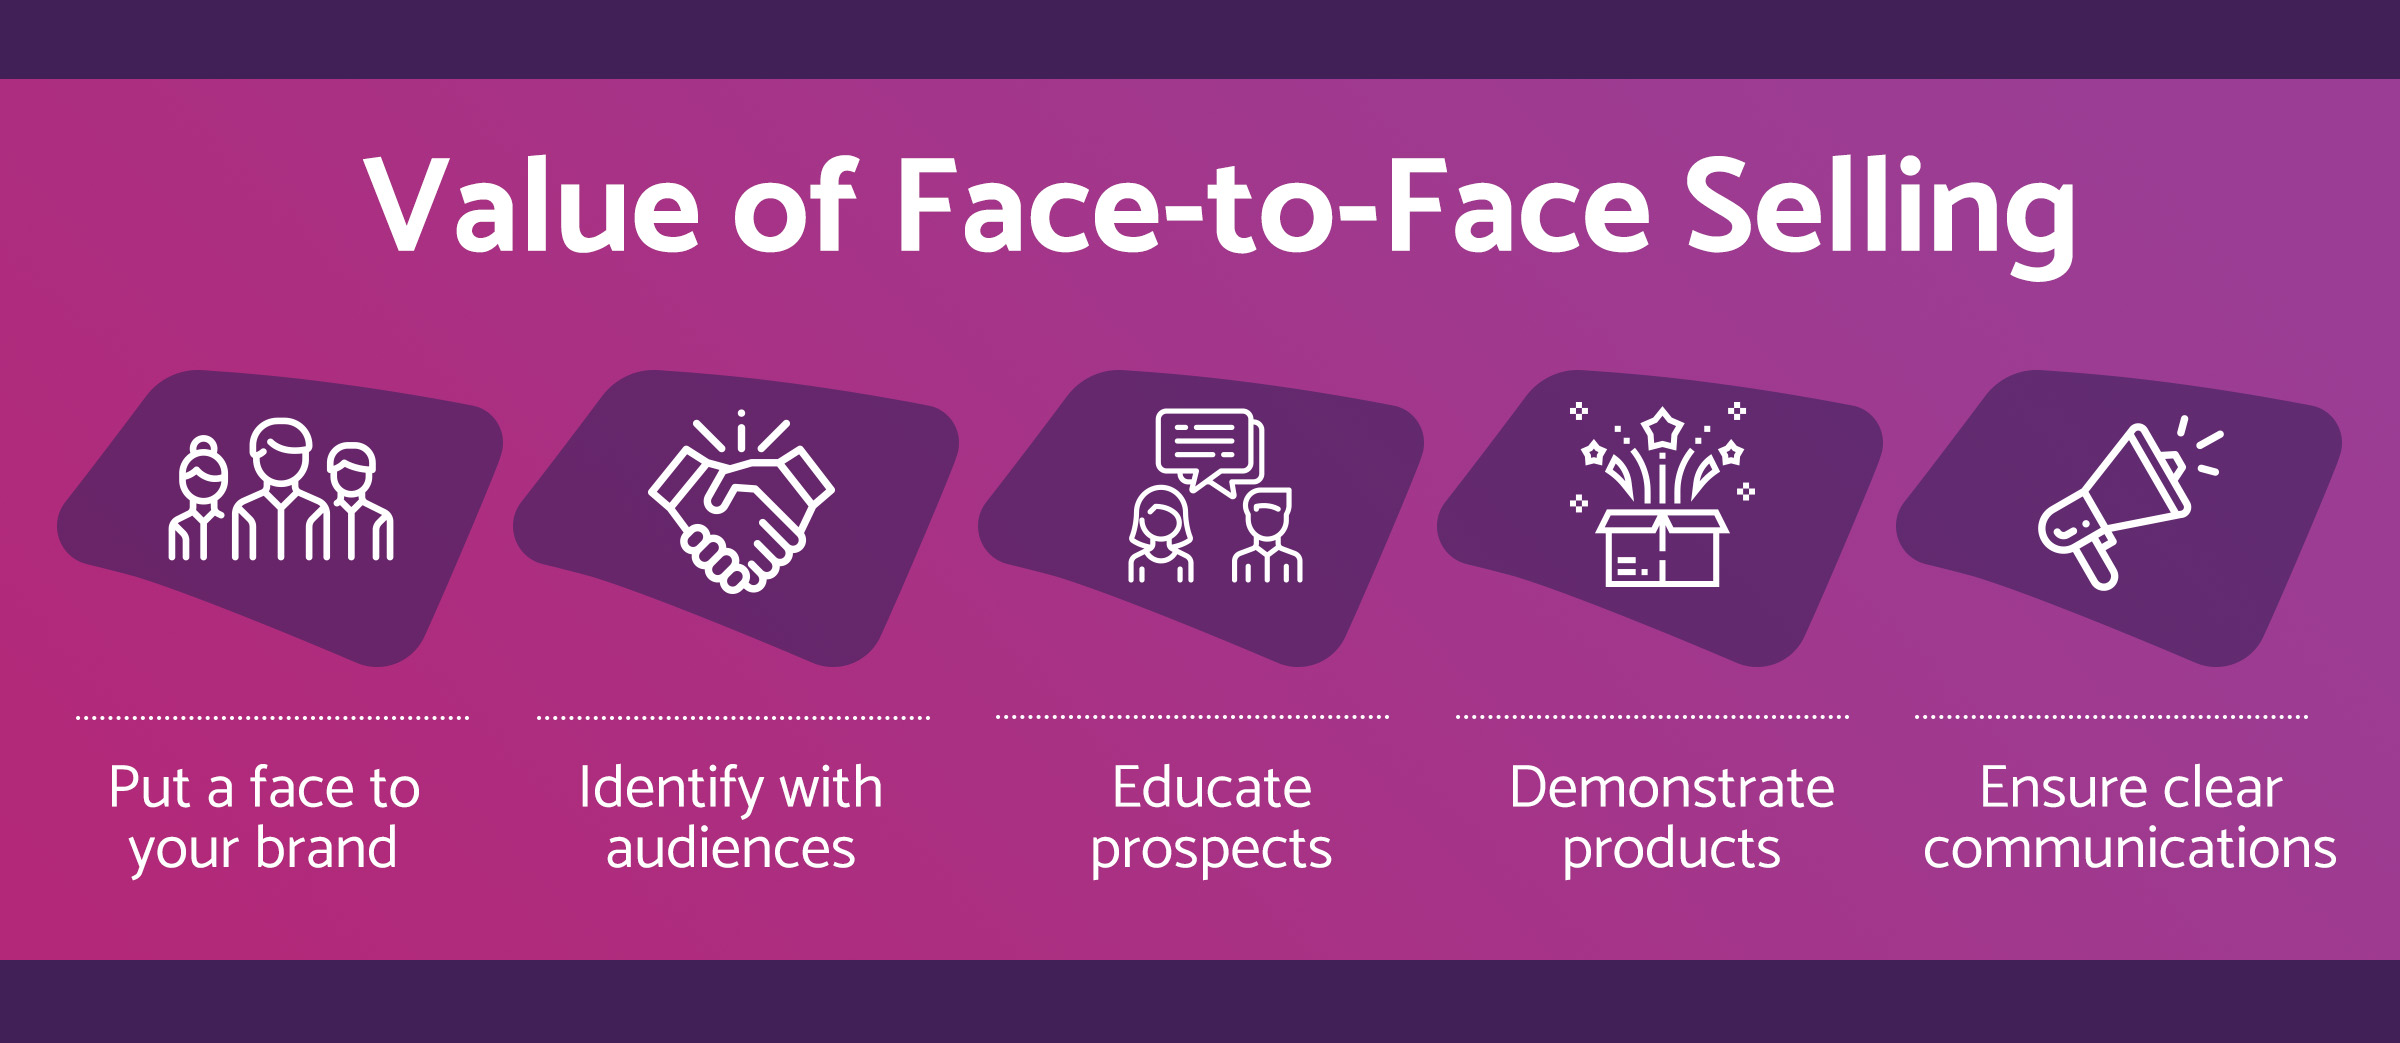 face-to-face-sales-benefits